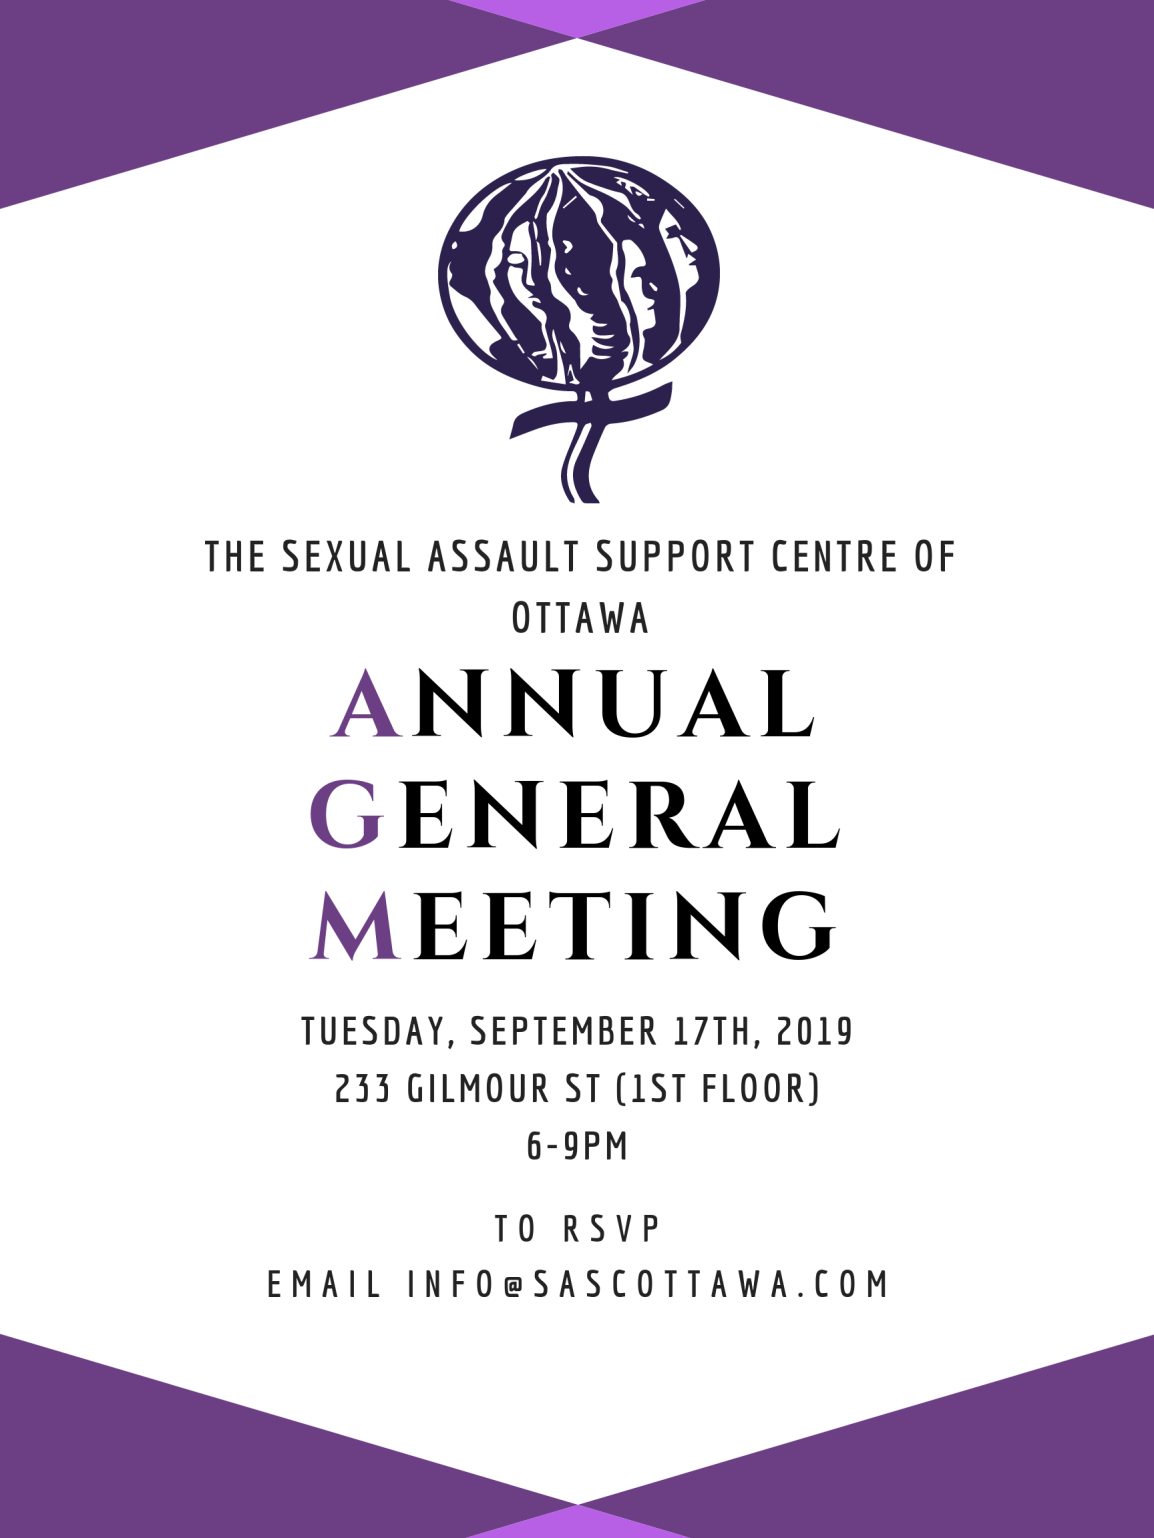 tHE sEXUAL aSSAULT SUPPORT CENTRE OF OTTAWA